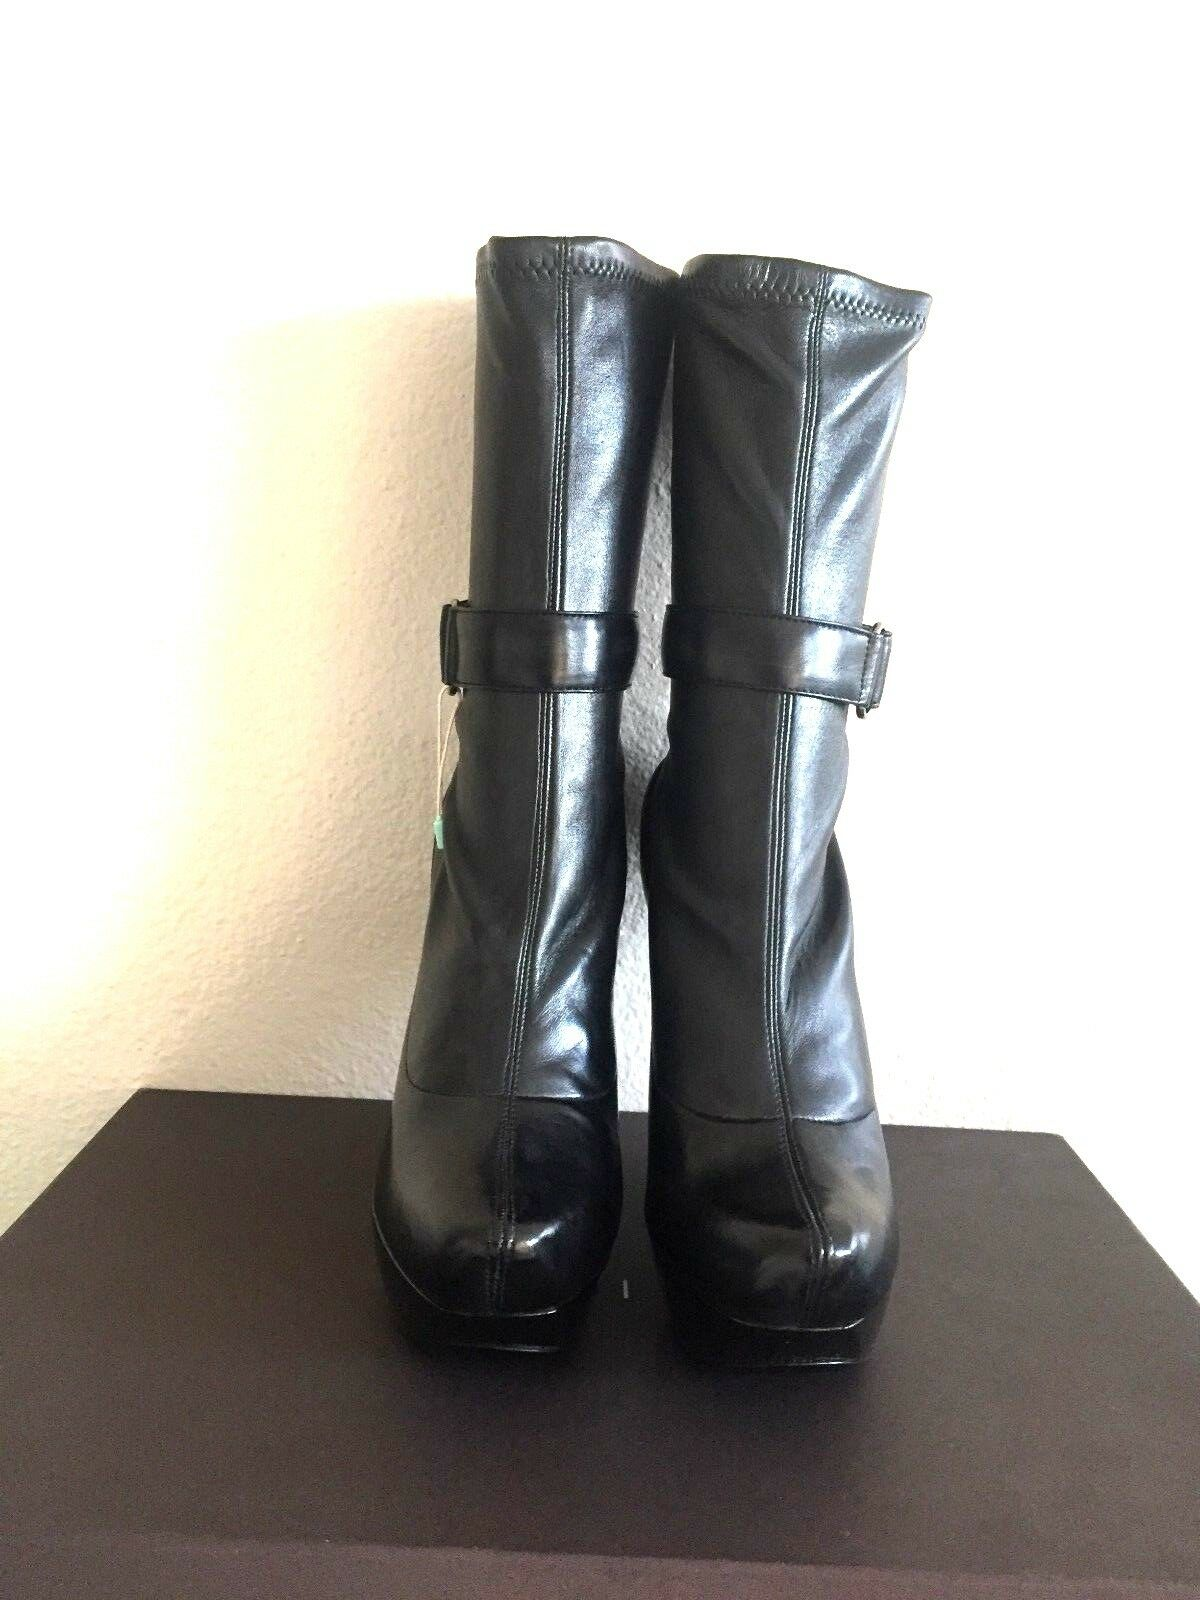 CELINE by Phoebe Philo black Leather Leather Leather Platform Wedge Ankle Boots 37 Made In  a6e45b